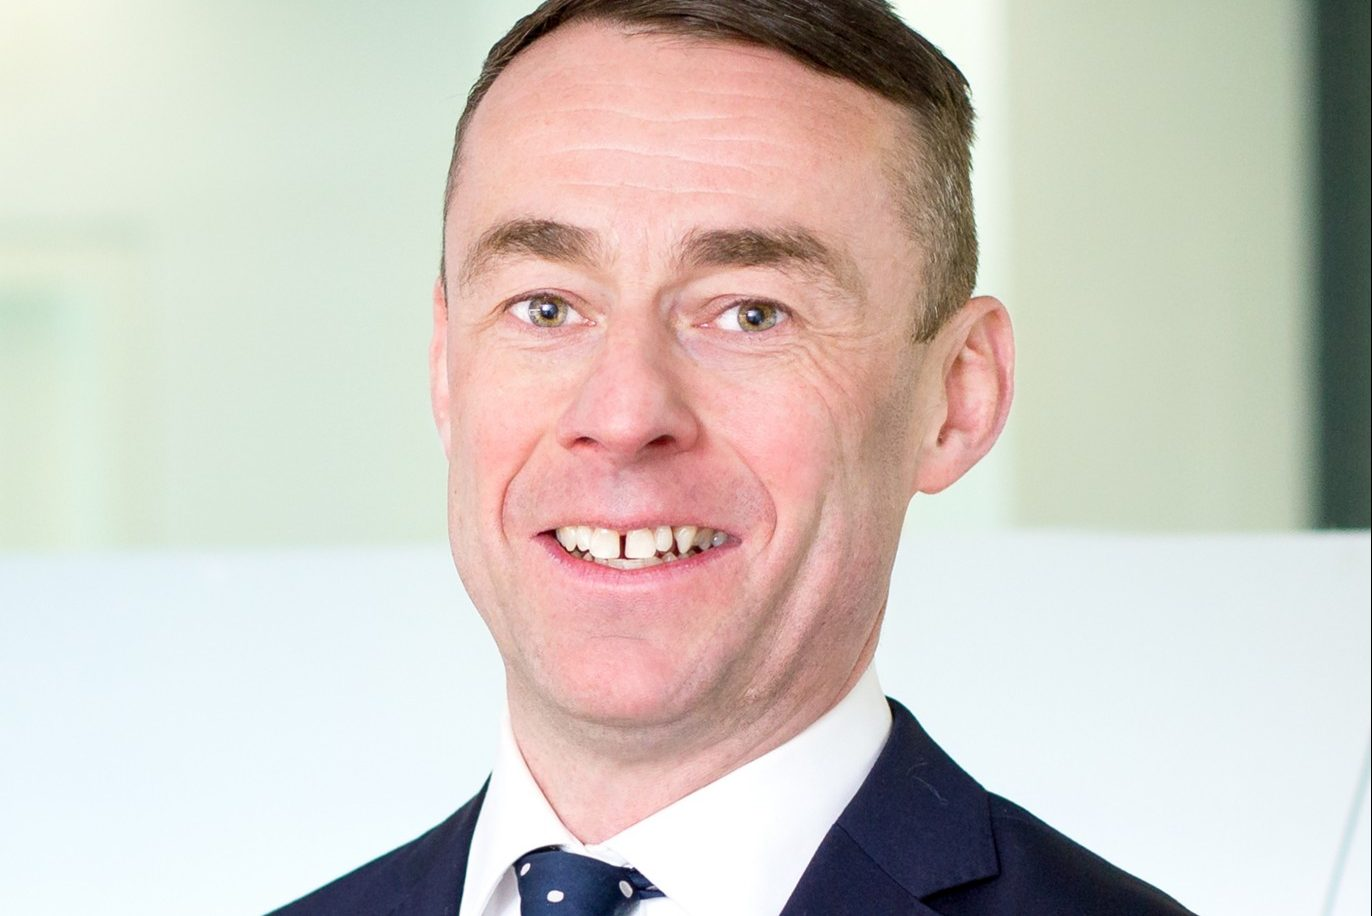 Industry report gives NI policymakers 'food for thought'